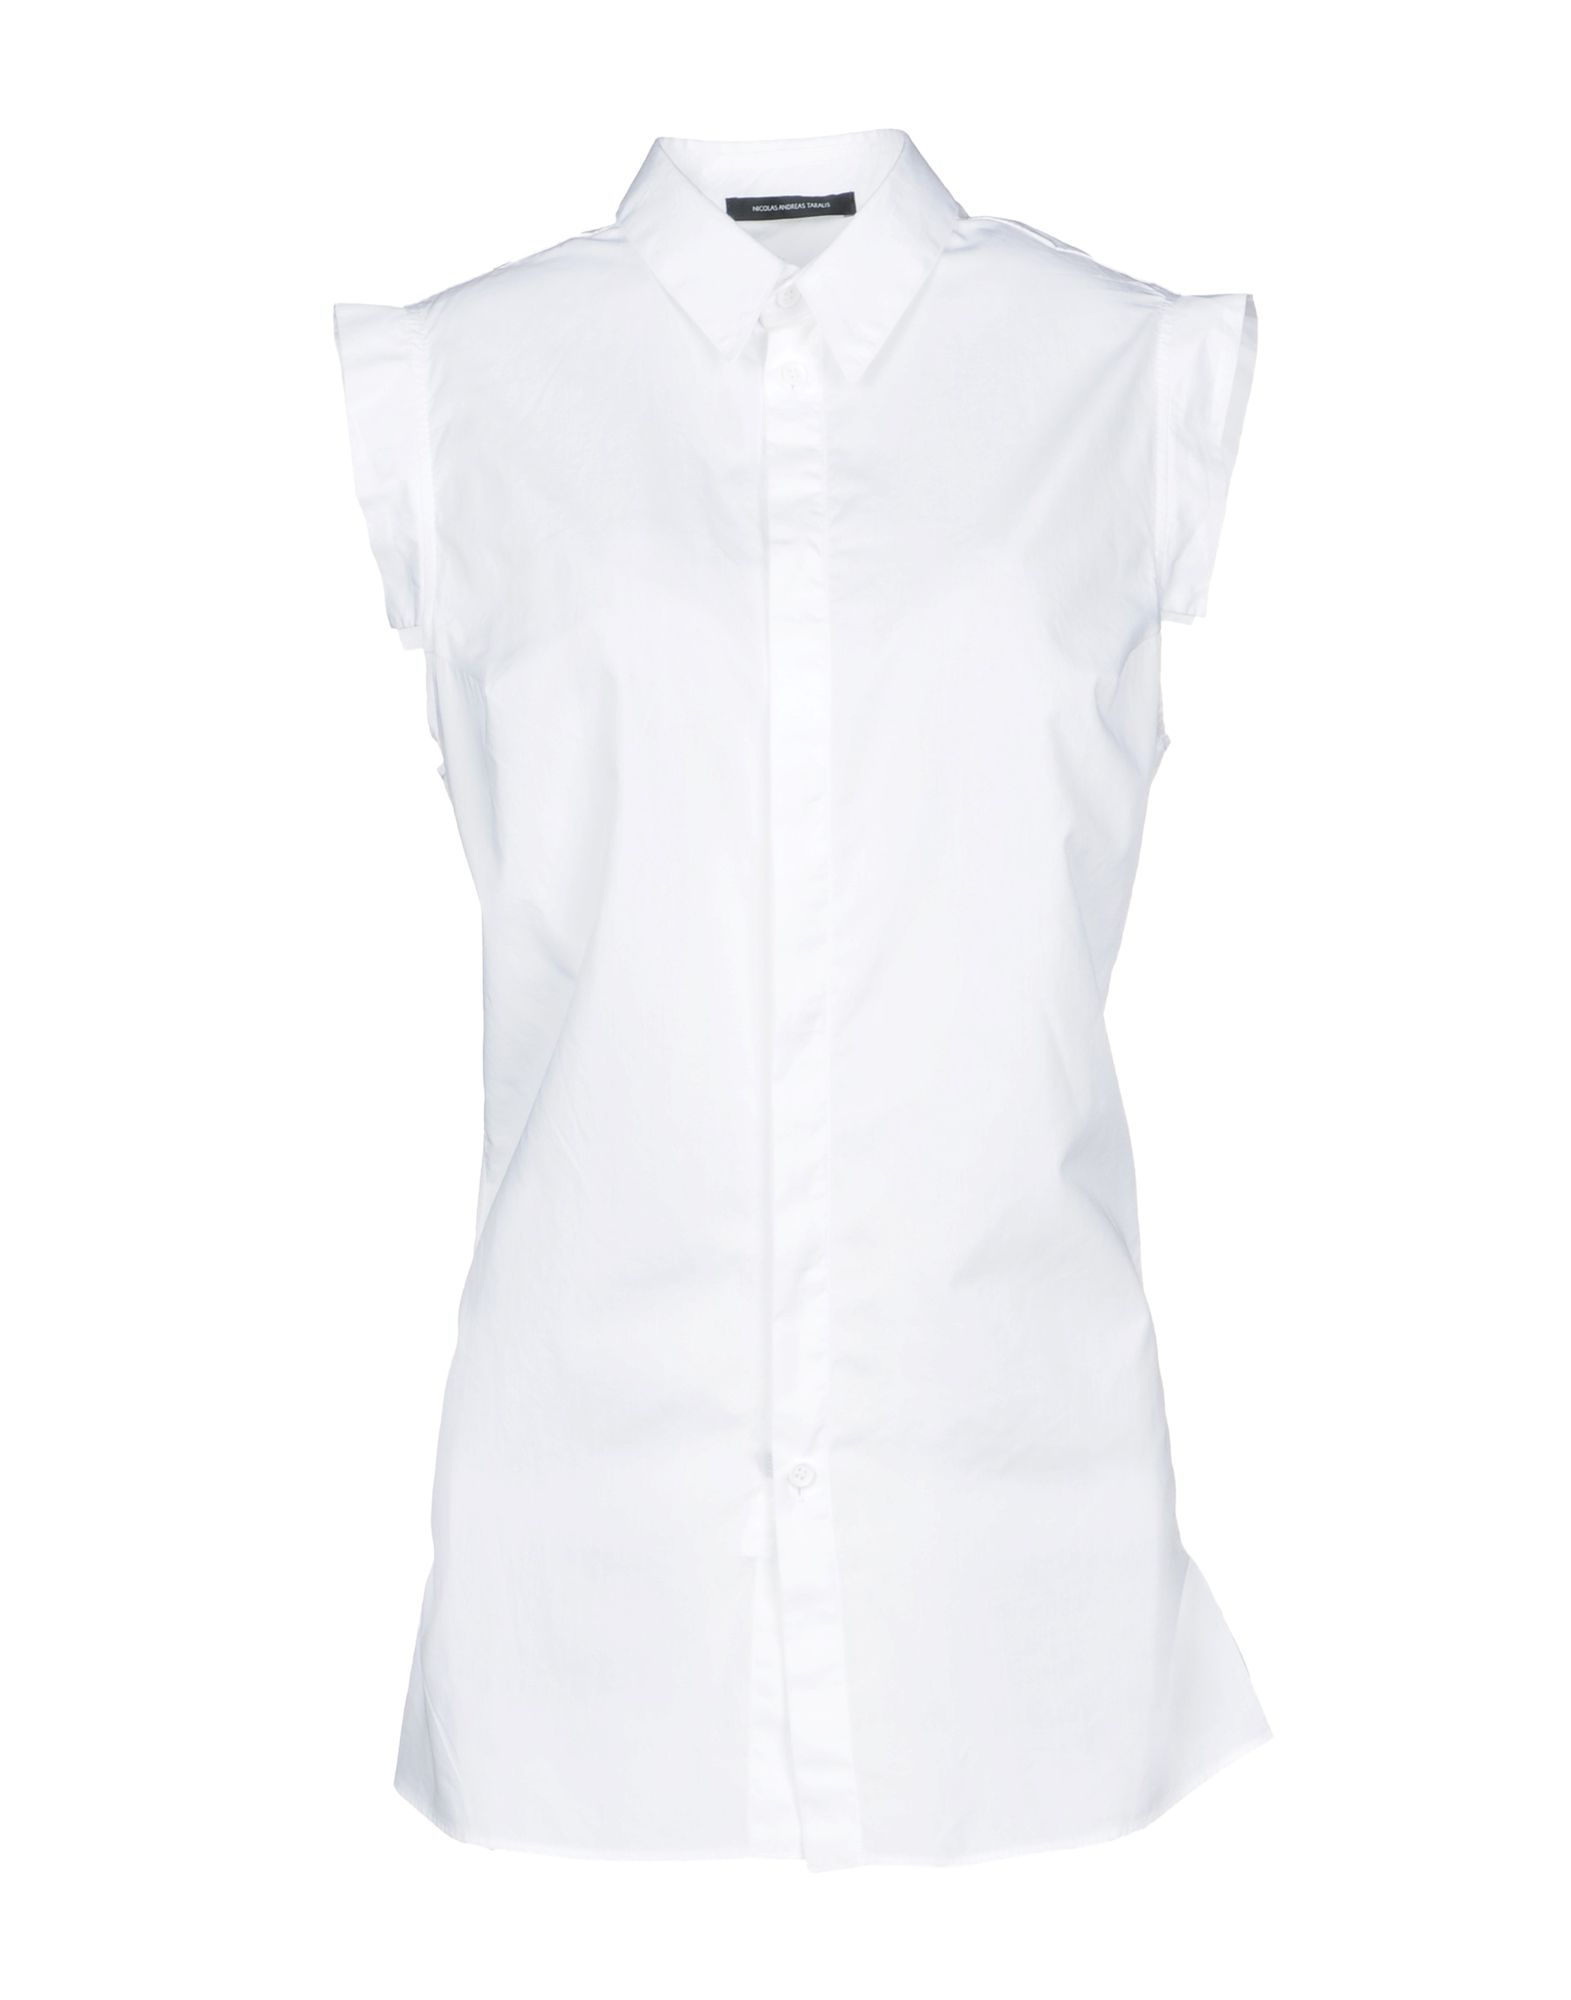 NICOLAS ANDREAS TARALIS Solid Color Shirts & Blouses in White